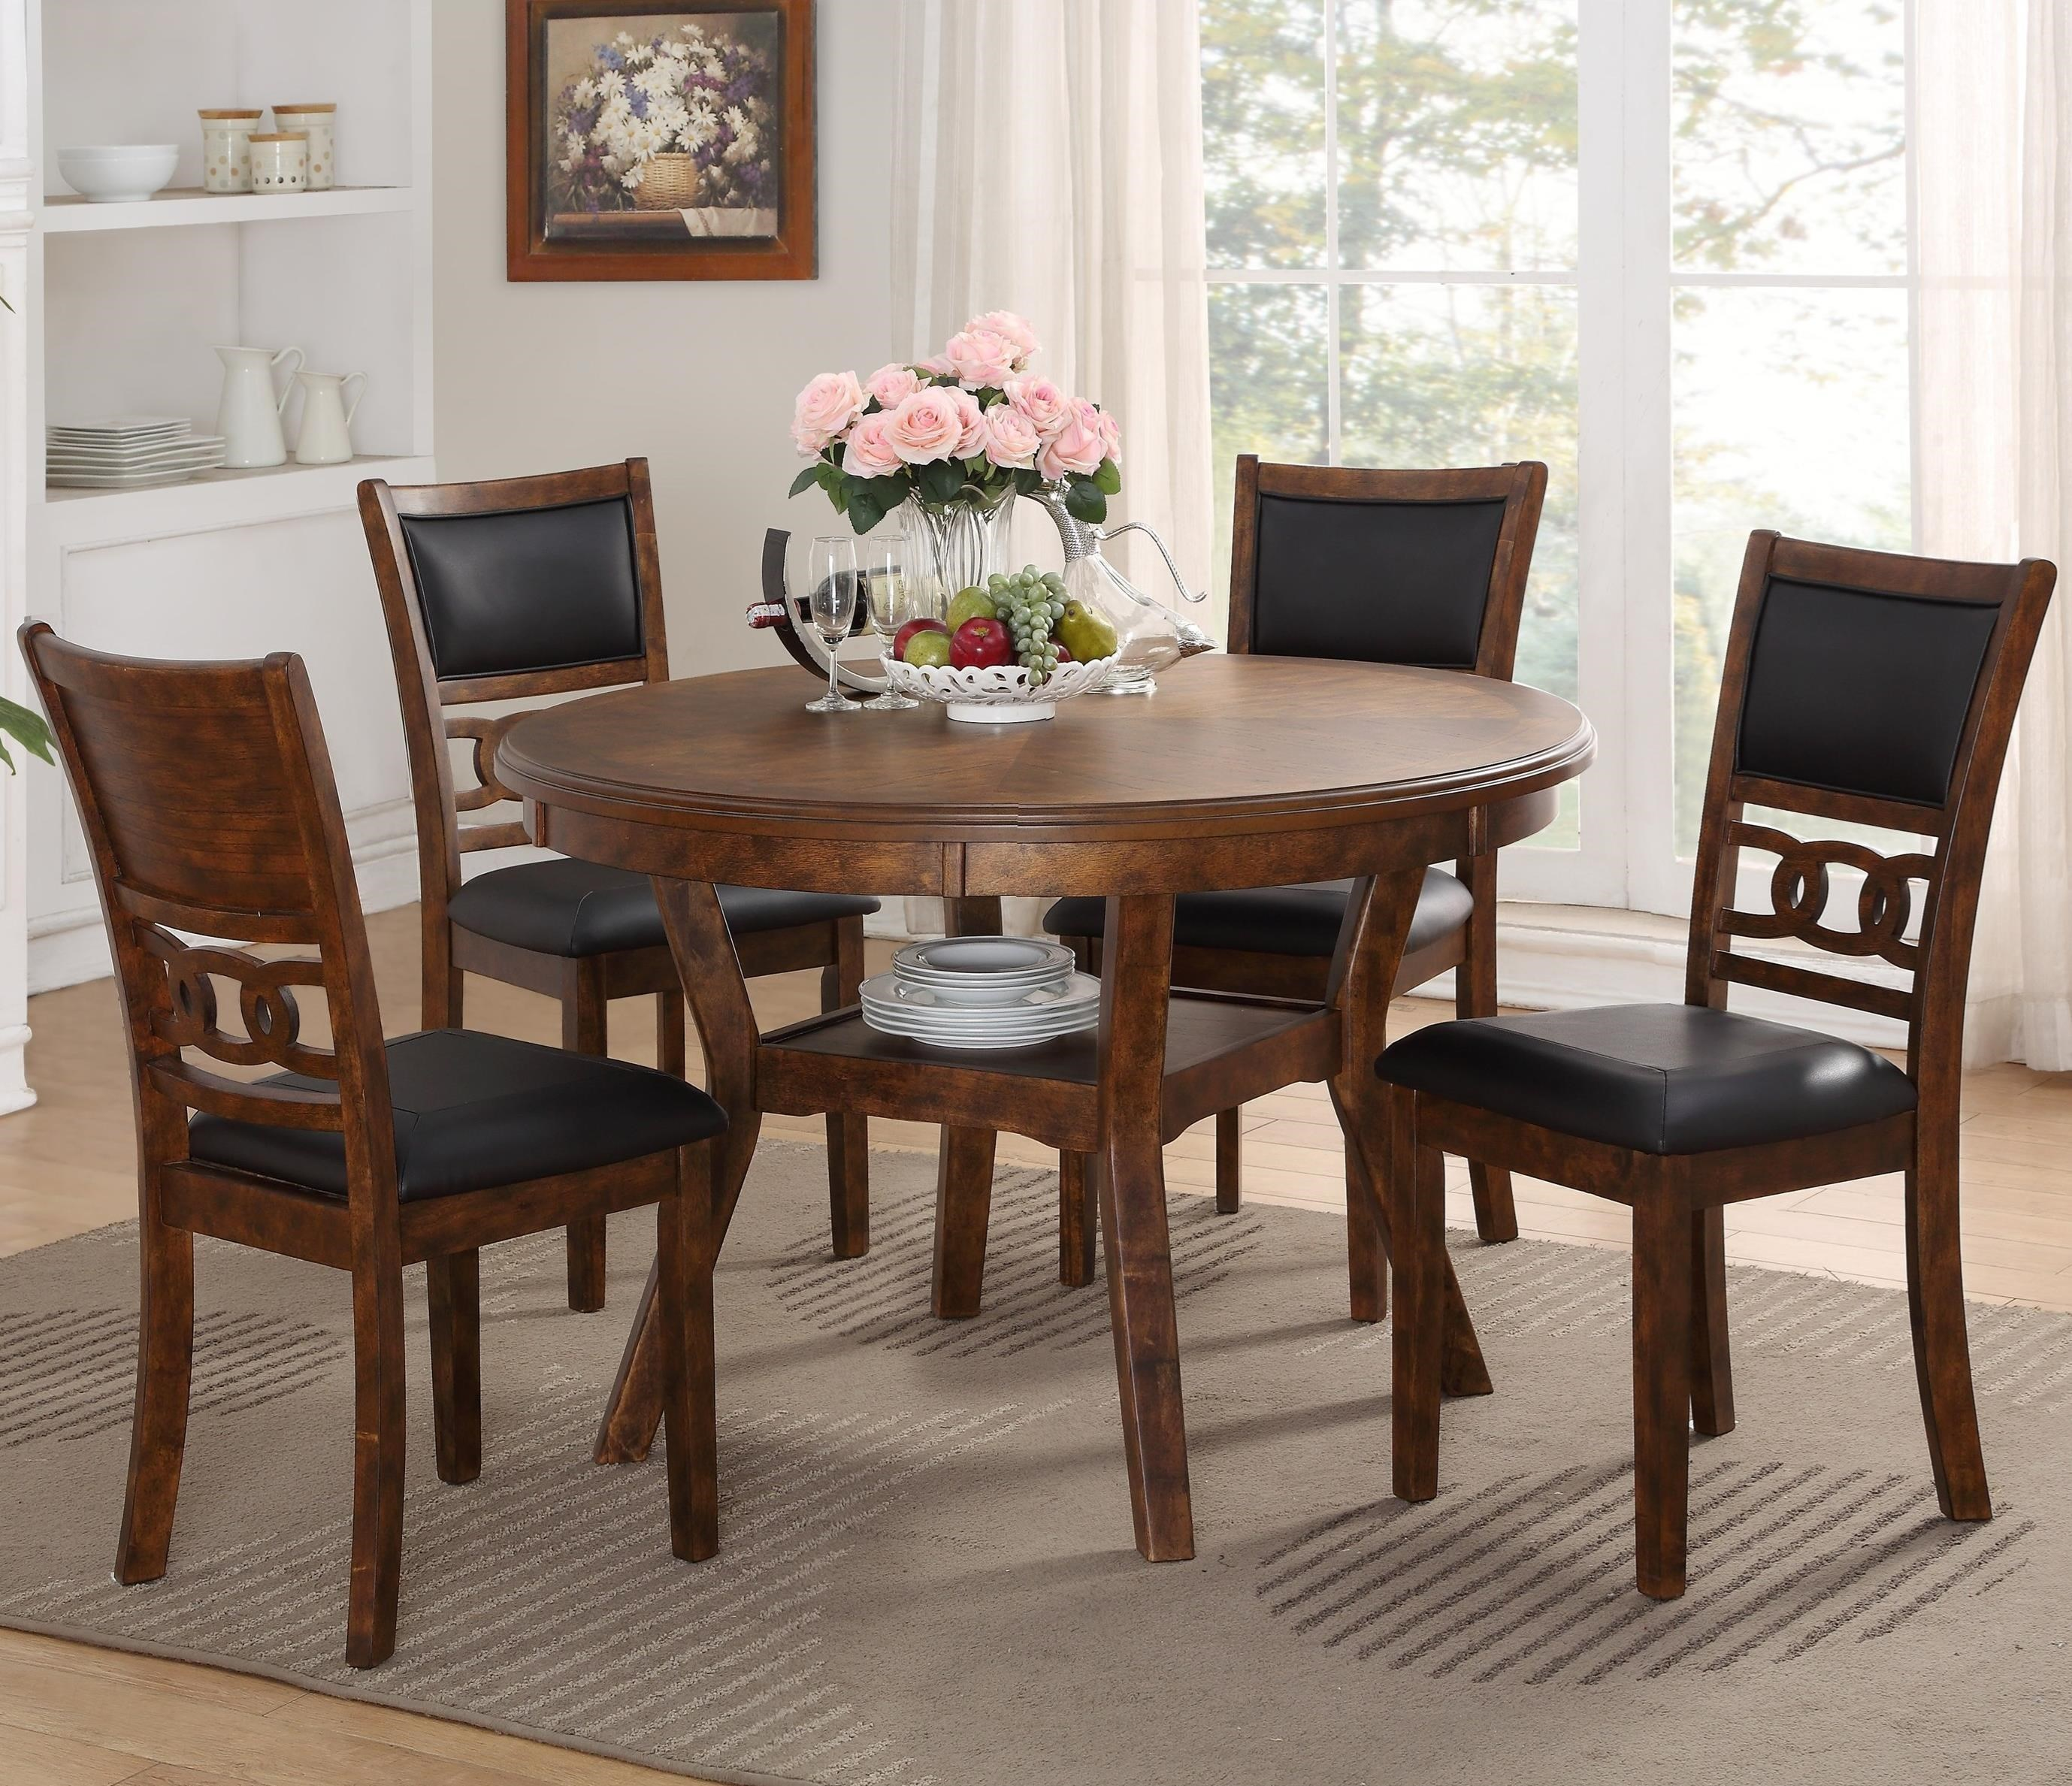 New Classic GiaDining Table and Chair Set with 4 Chairs & New Classic Gia D1701-50S-BRN Dining Table and Chair Set with 4 ...